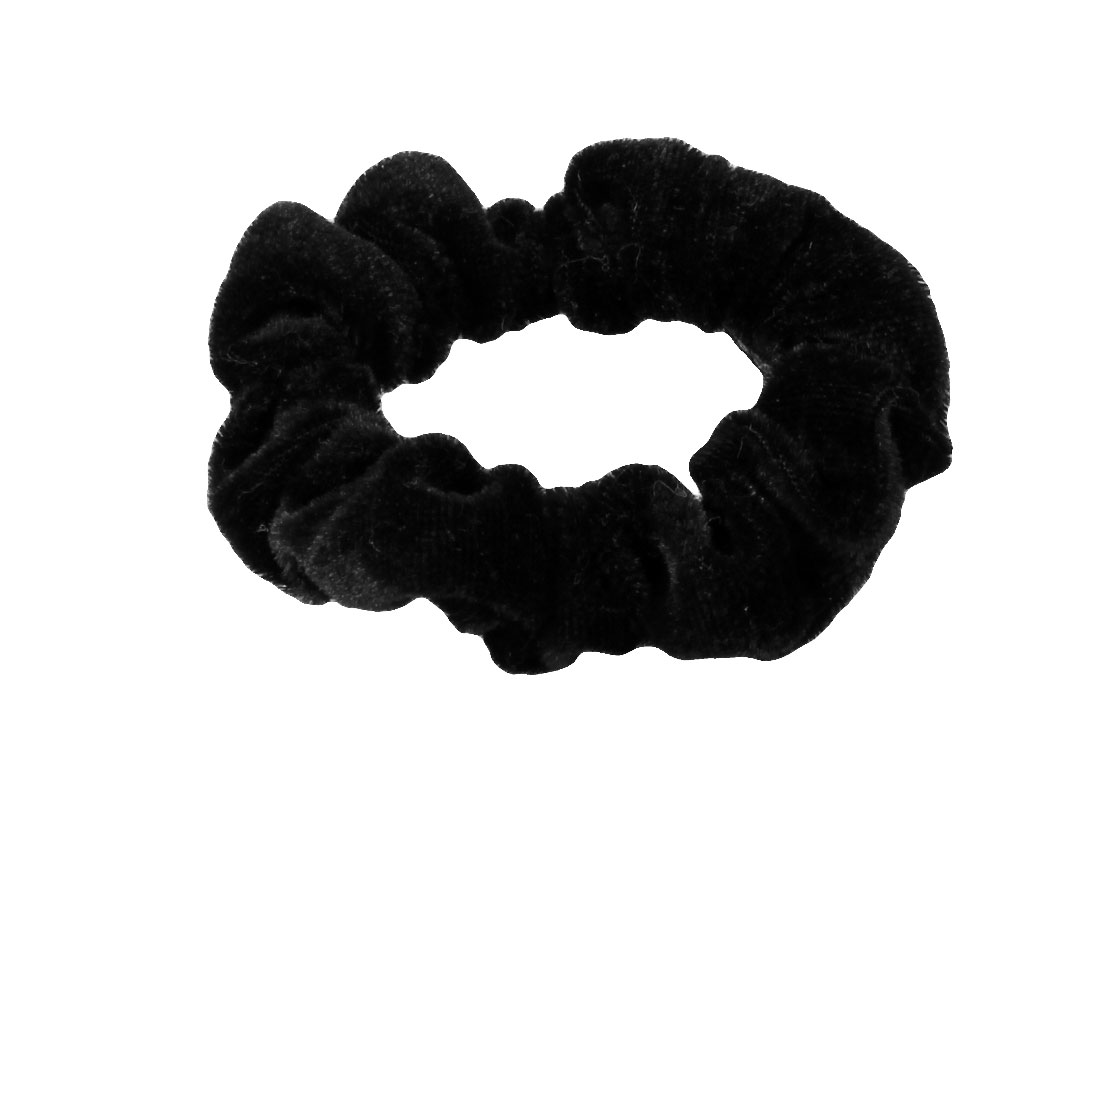 Woman Girl Black Velvet Elastic Hair Tie Ponytail Holder Band 4 Pcs